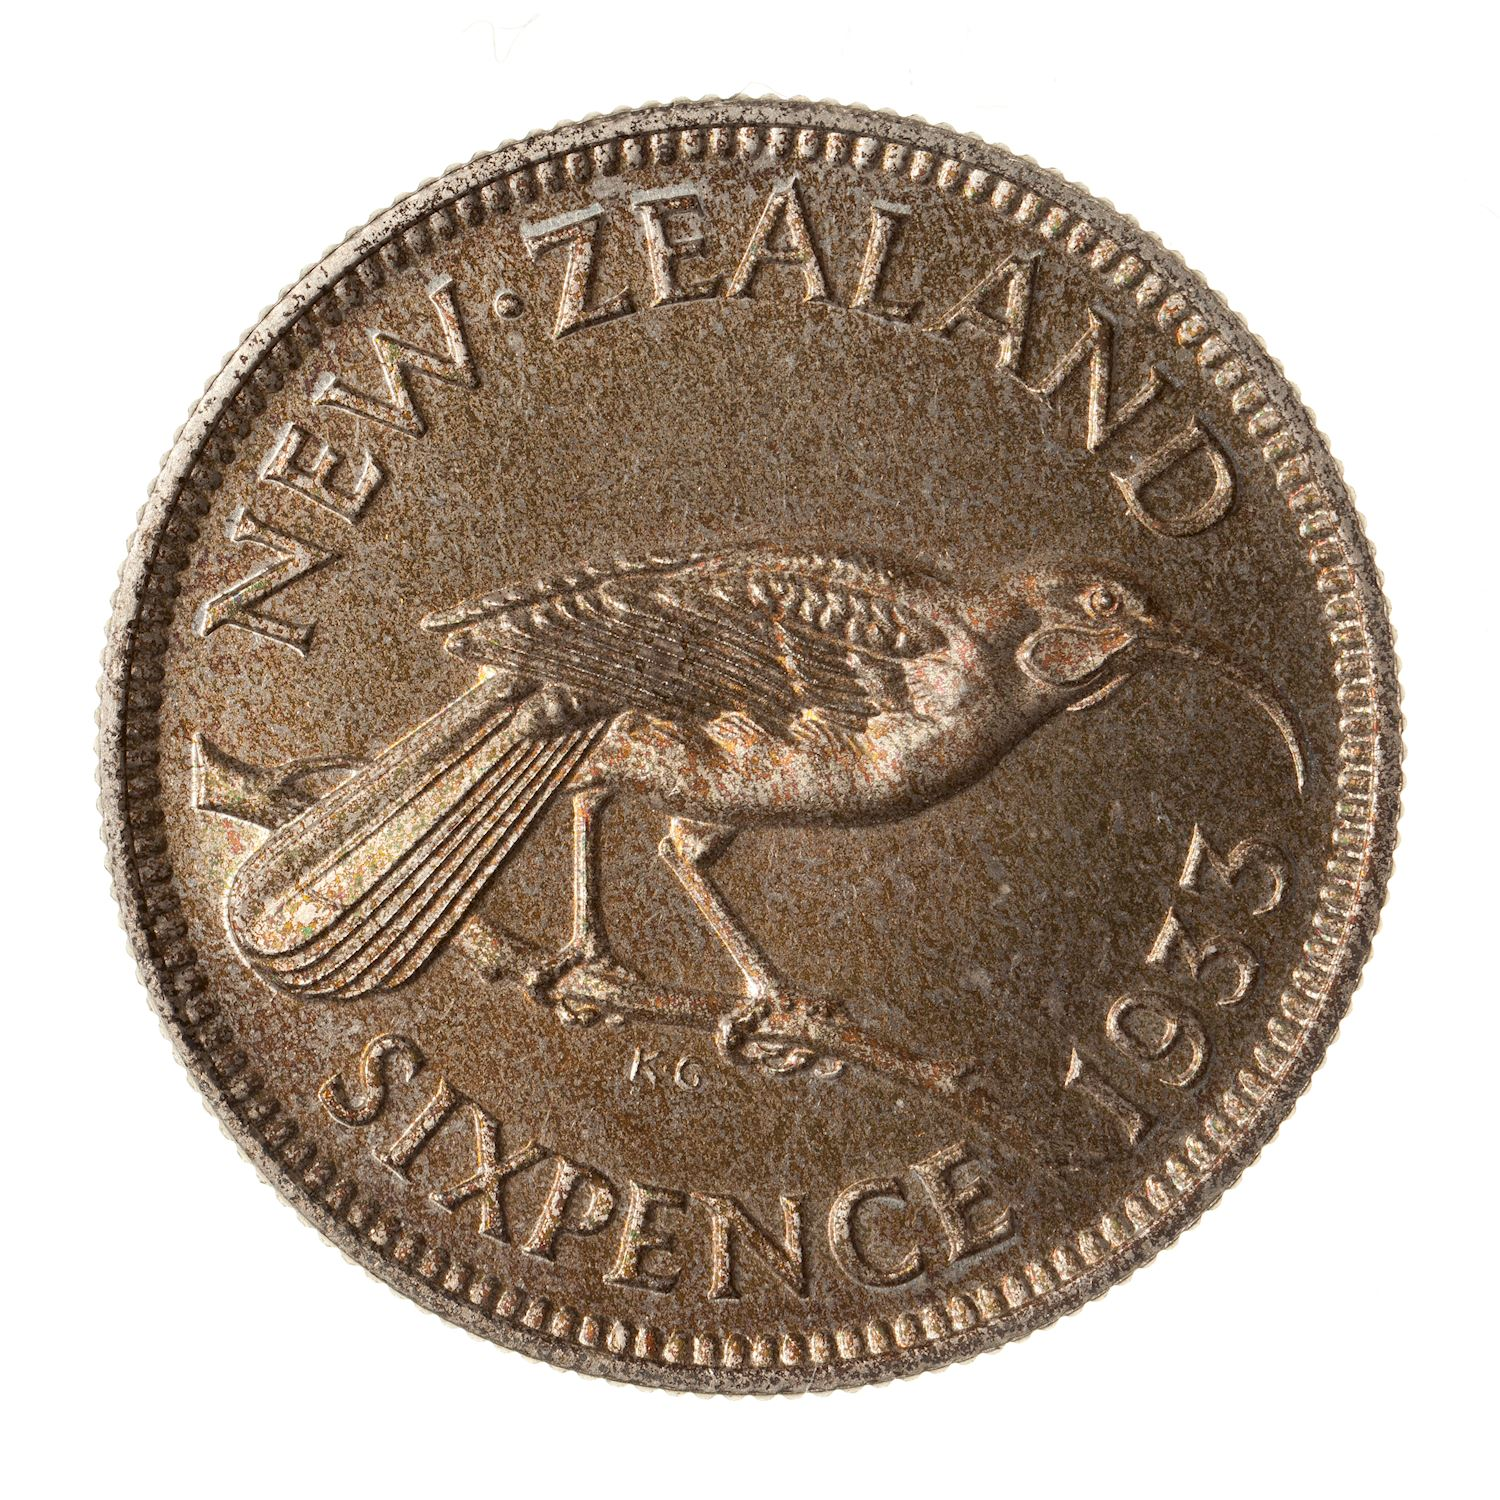 Sixpence 1933: Photo Proof Coin - 6 Pence, New Zealand, 1933